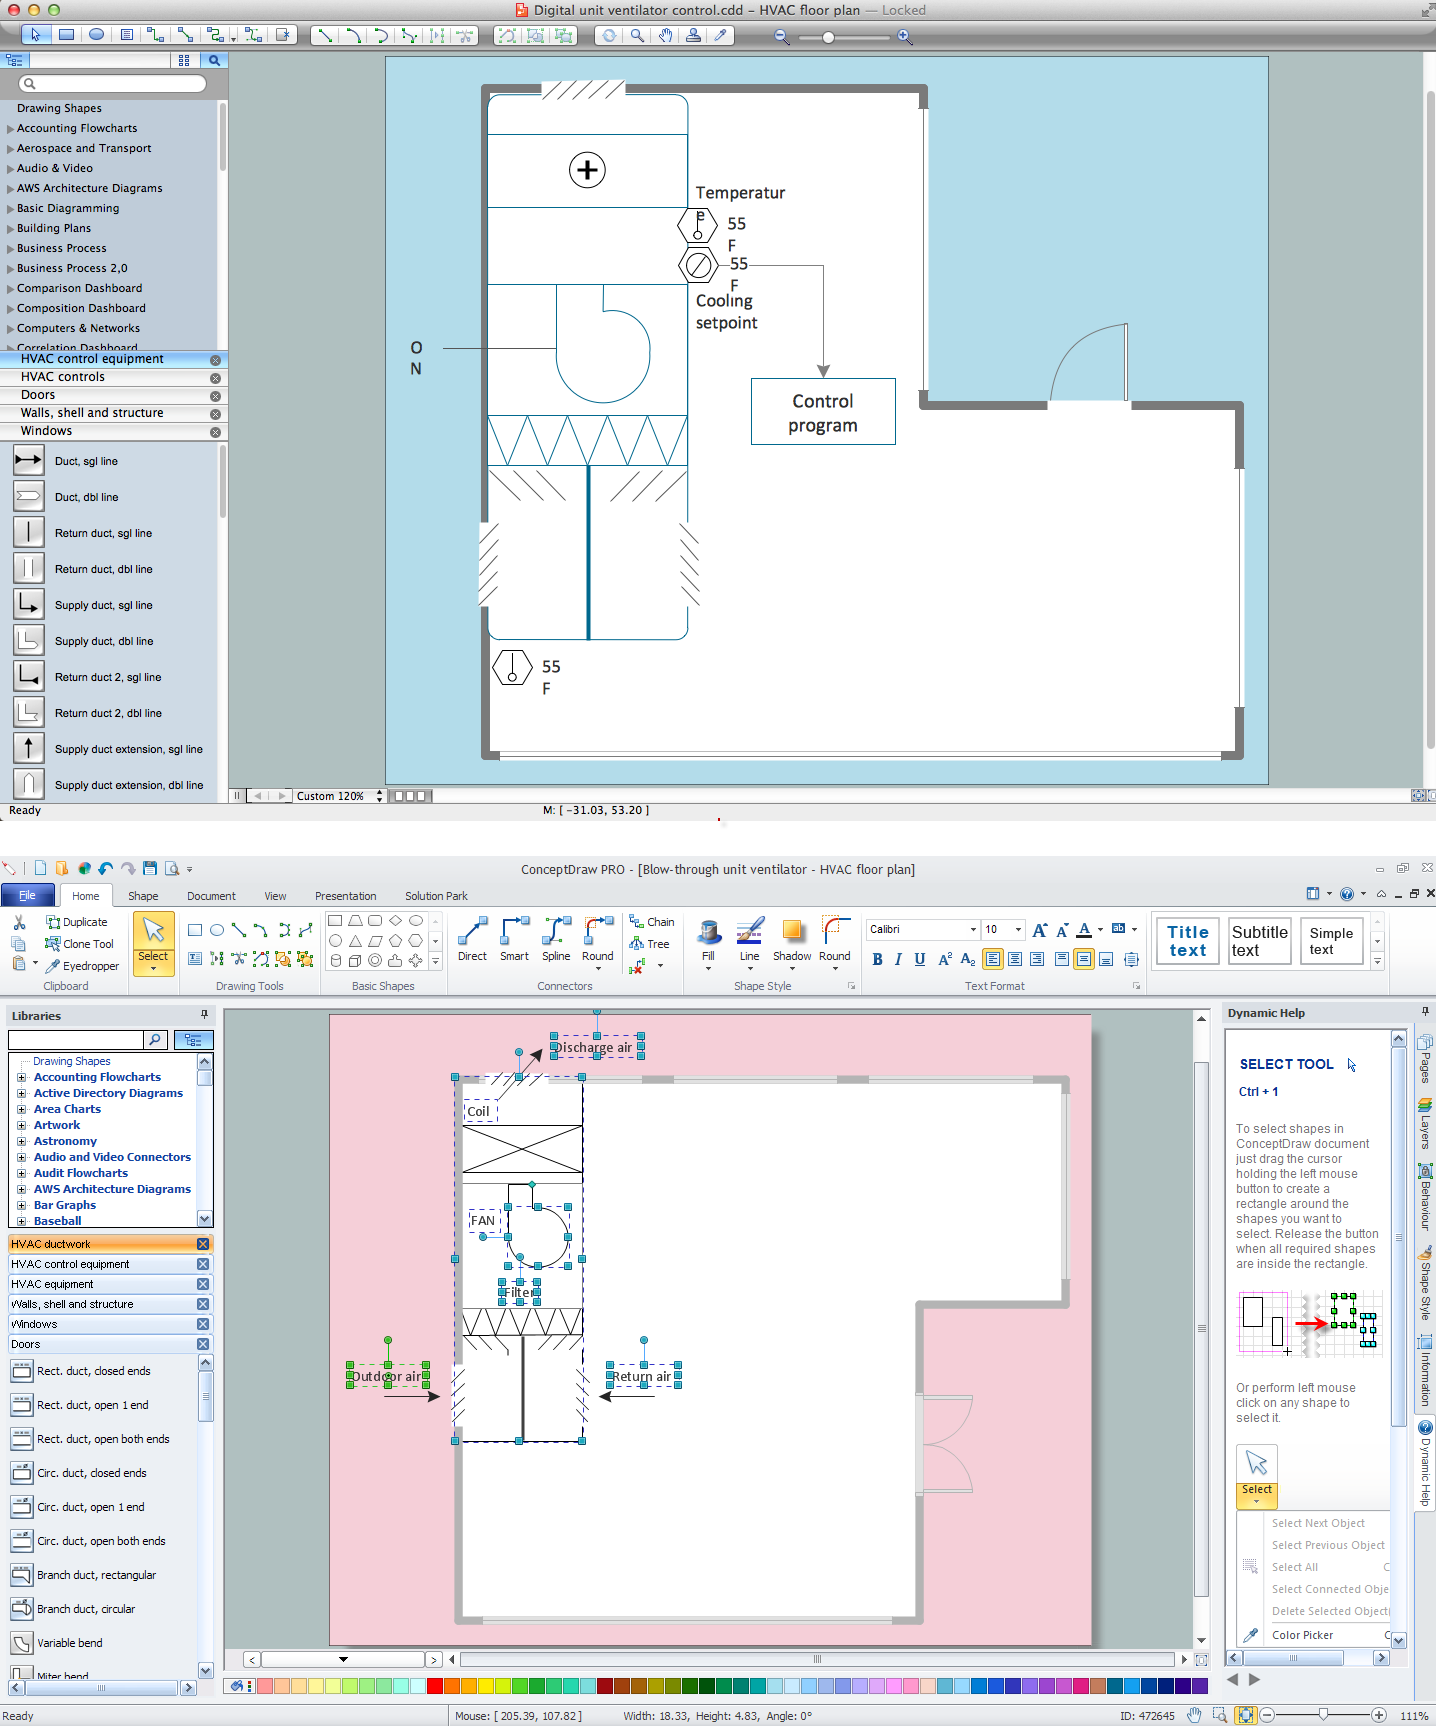 Blueprints Schematic Drawing Software - House Wiring Diagram Symbols •